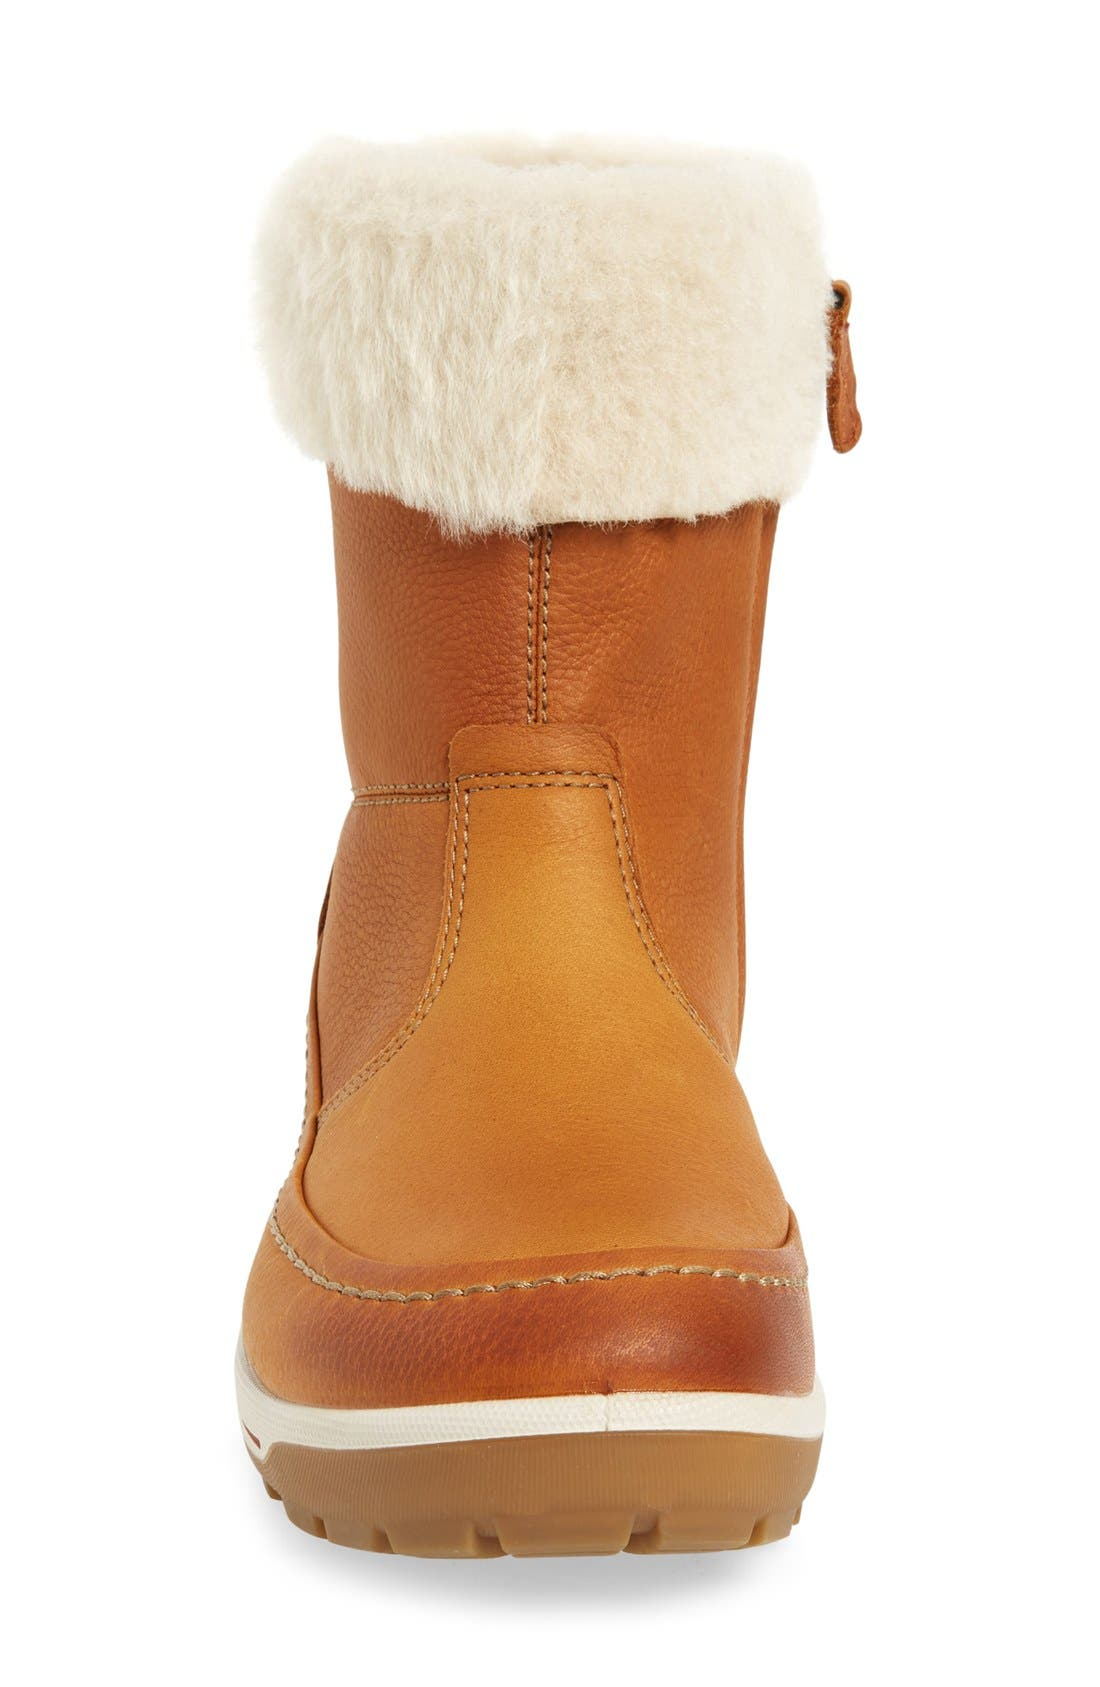 Trace Water Resistant Bootie,                             Alternate thumbnail 3, color,                             Amber Oiled Nubuck Leather